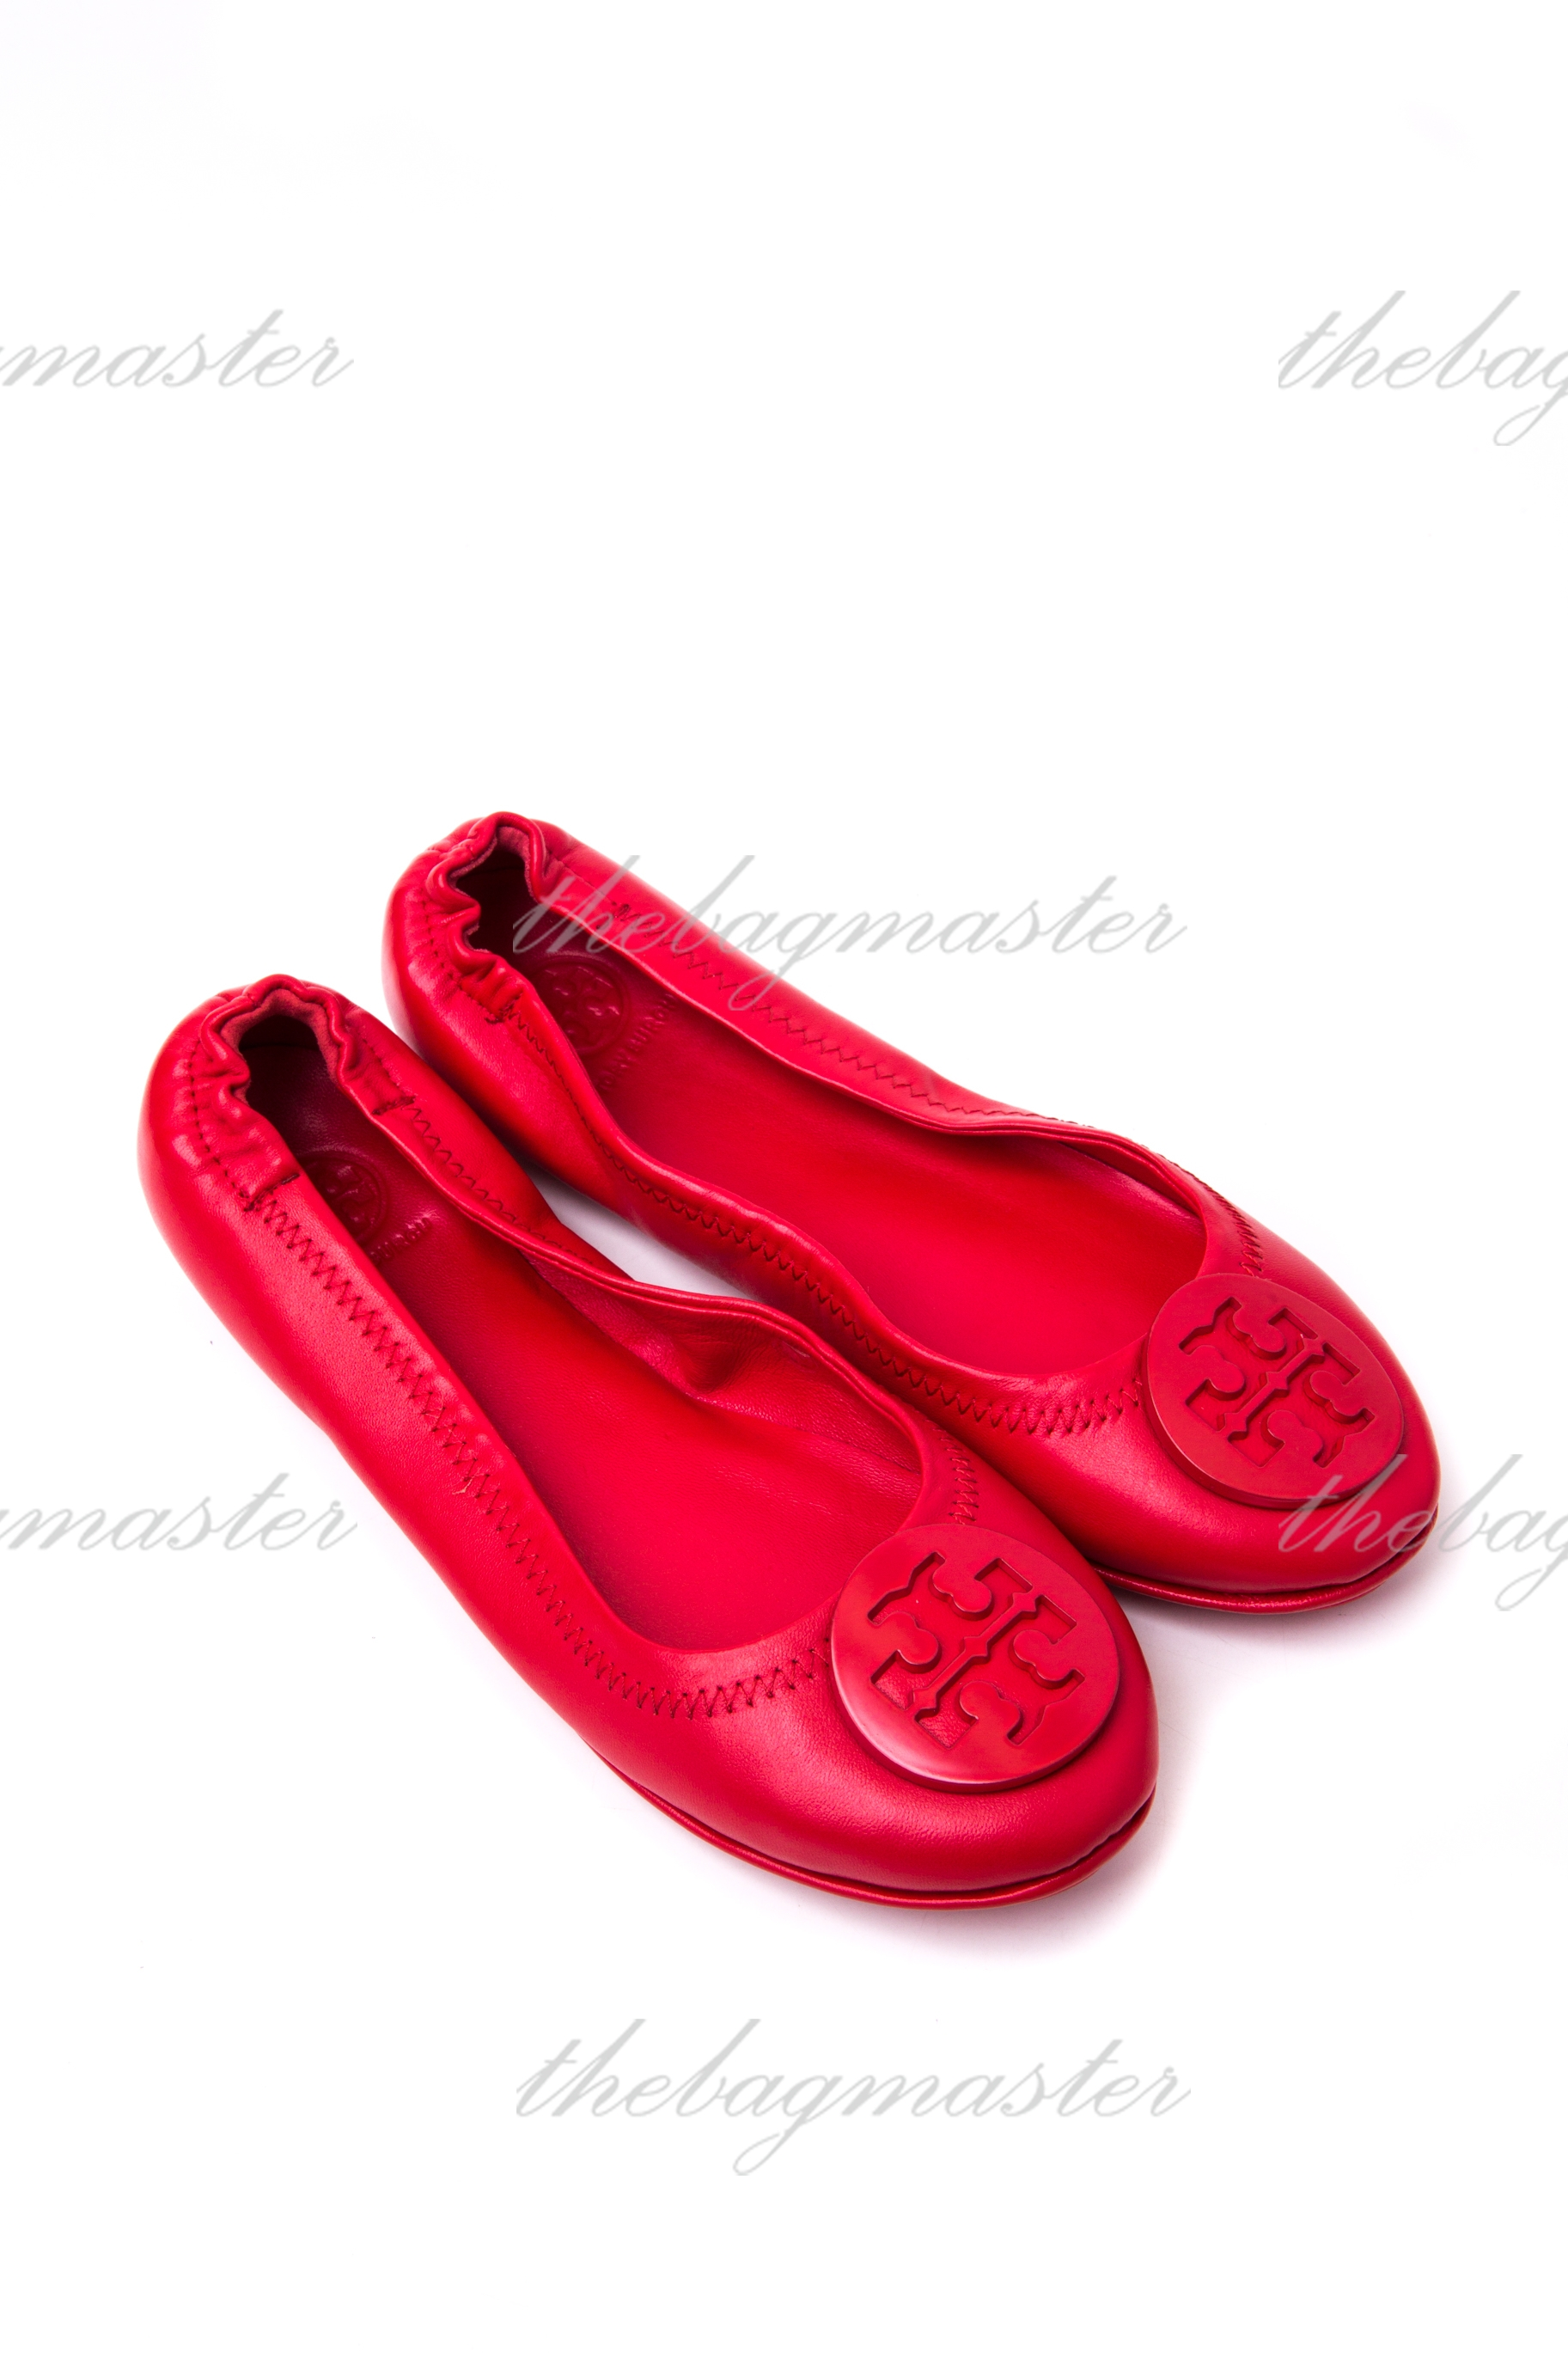 d94f365dcae0d2 Tory Burch Minnie Travel Logo Ballerina Flat – Red (Size 6) — The ...